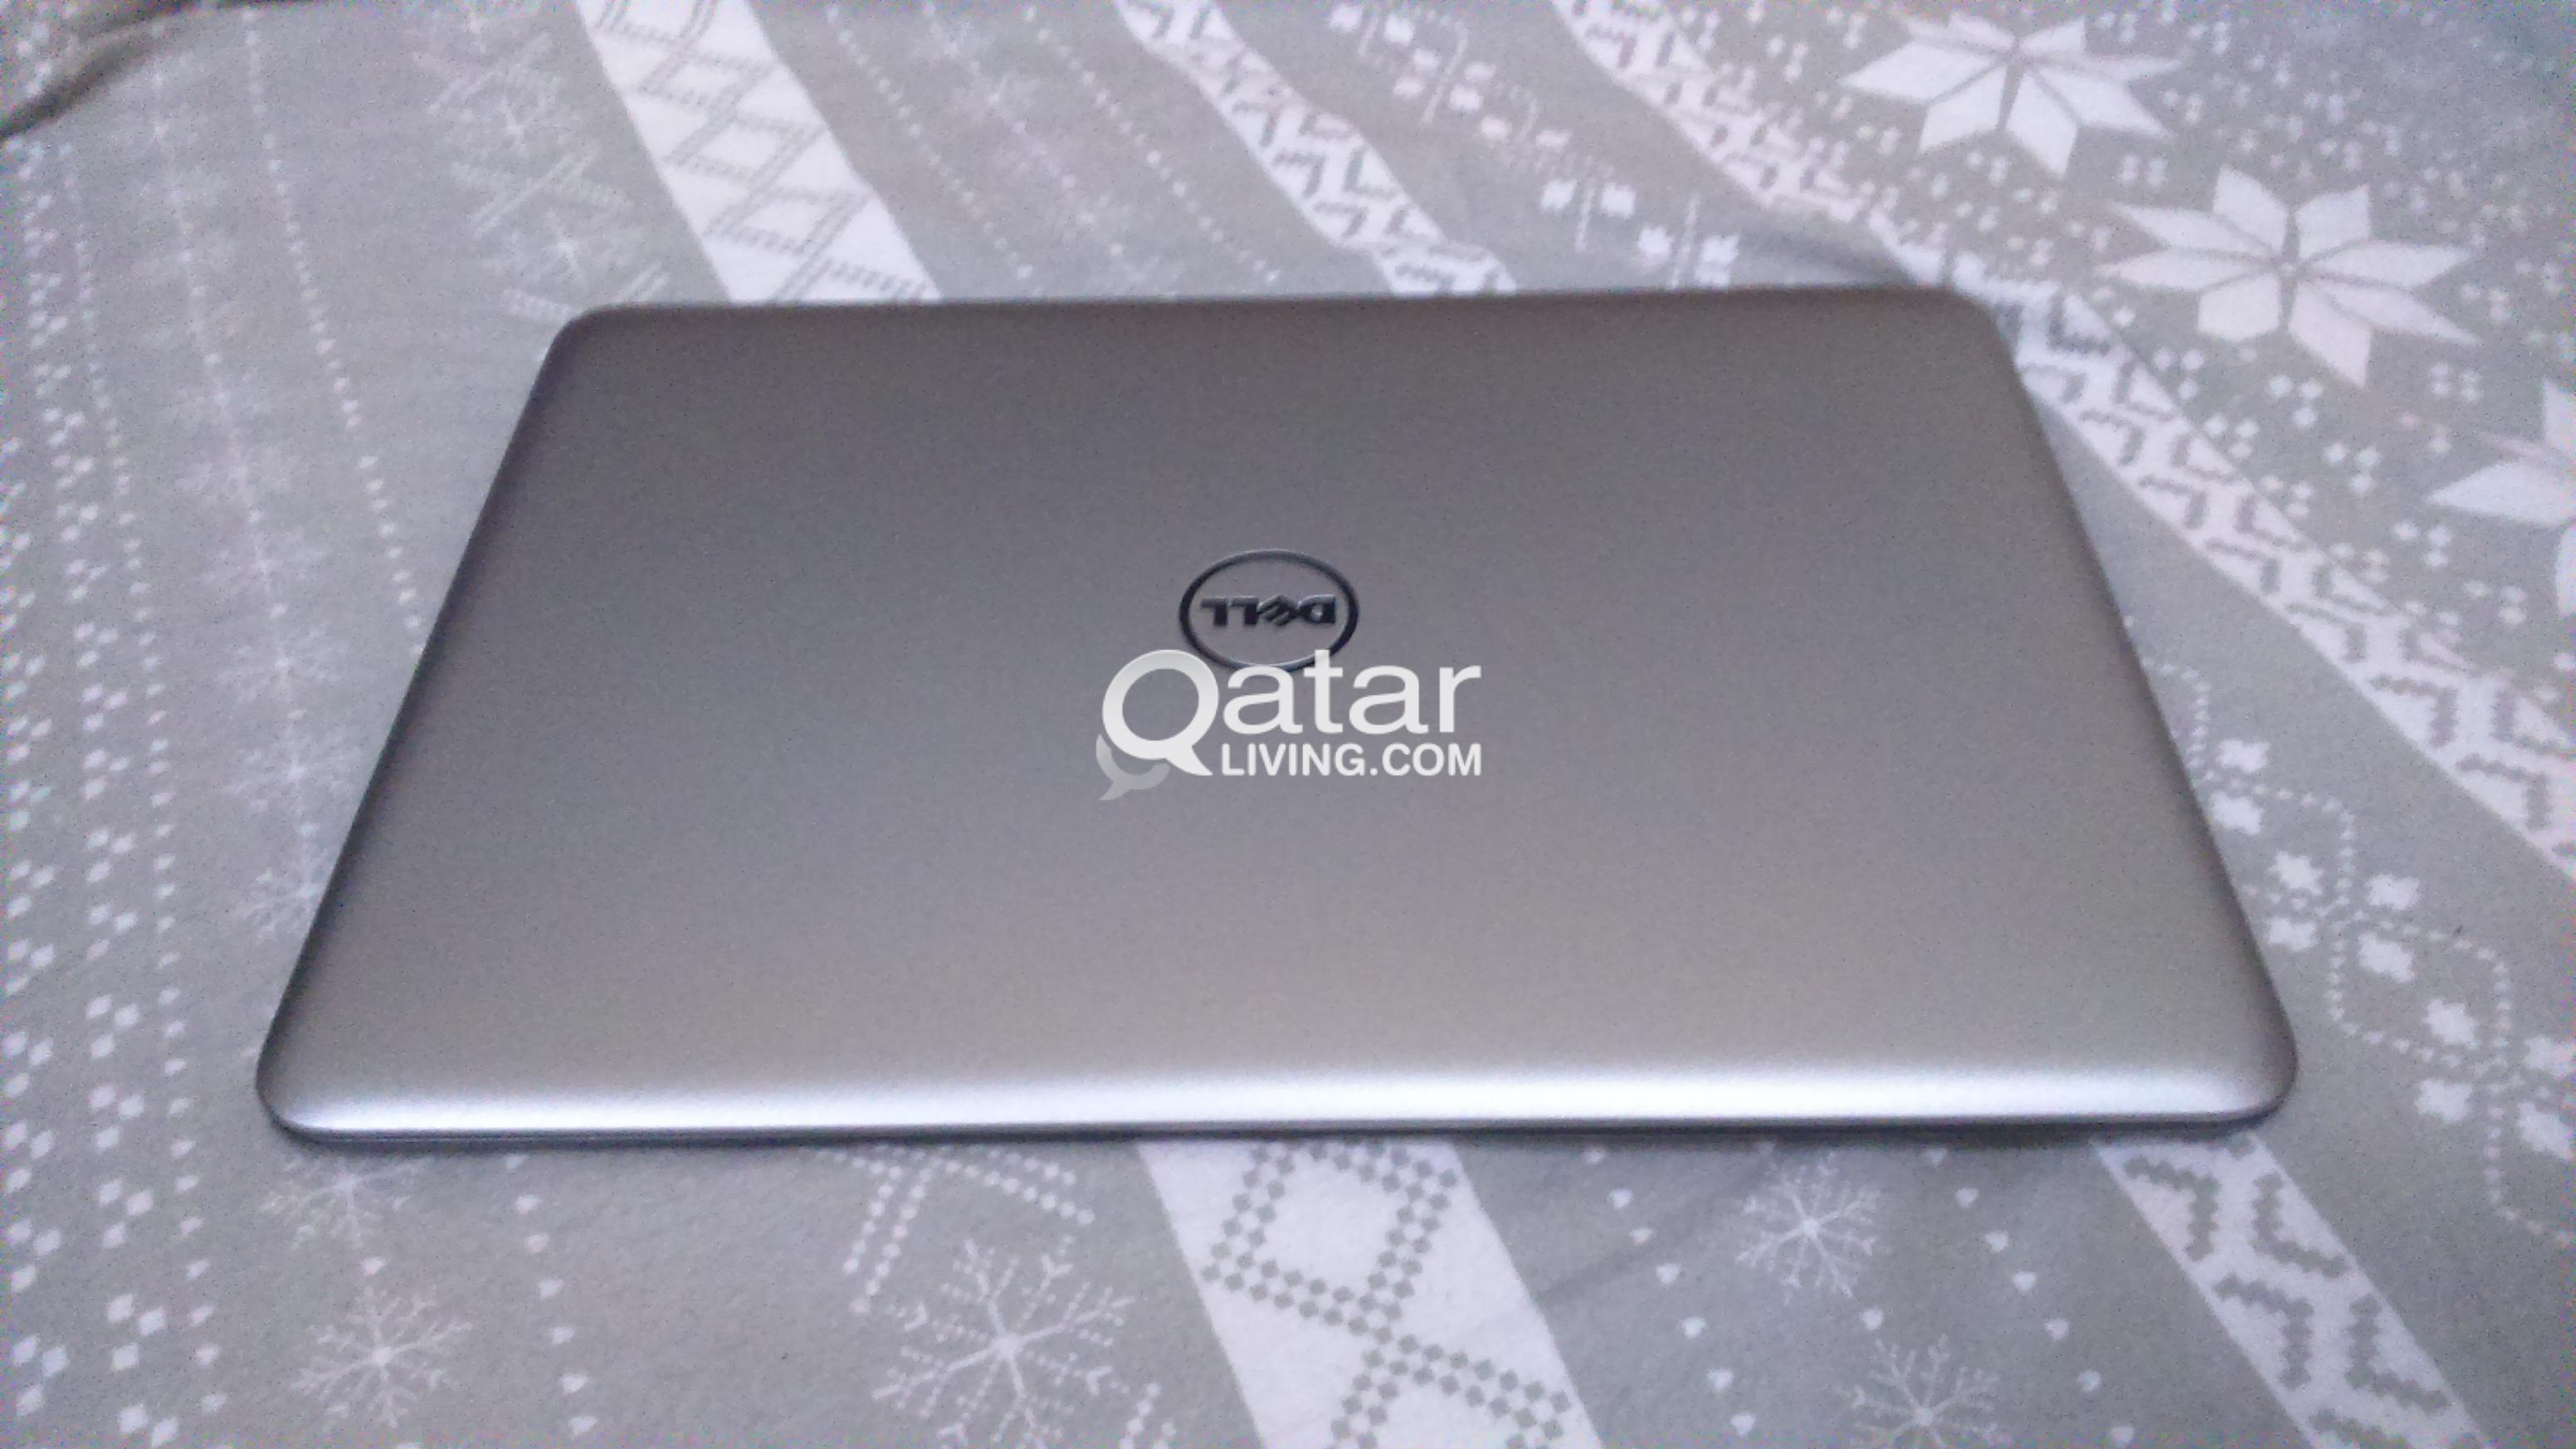 Dell Inspiron 15 7000 series Laptop - 2,200 QAR 5 months old